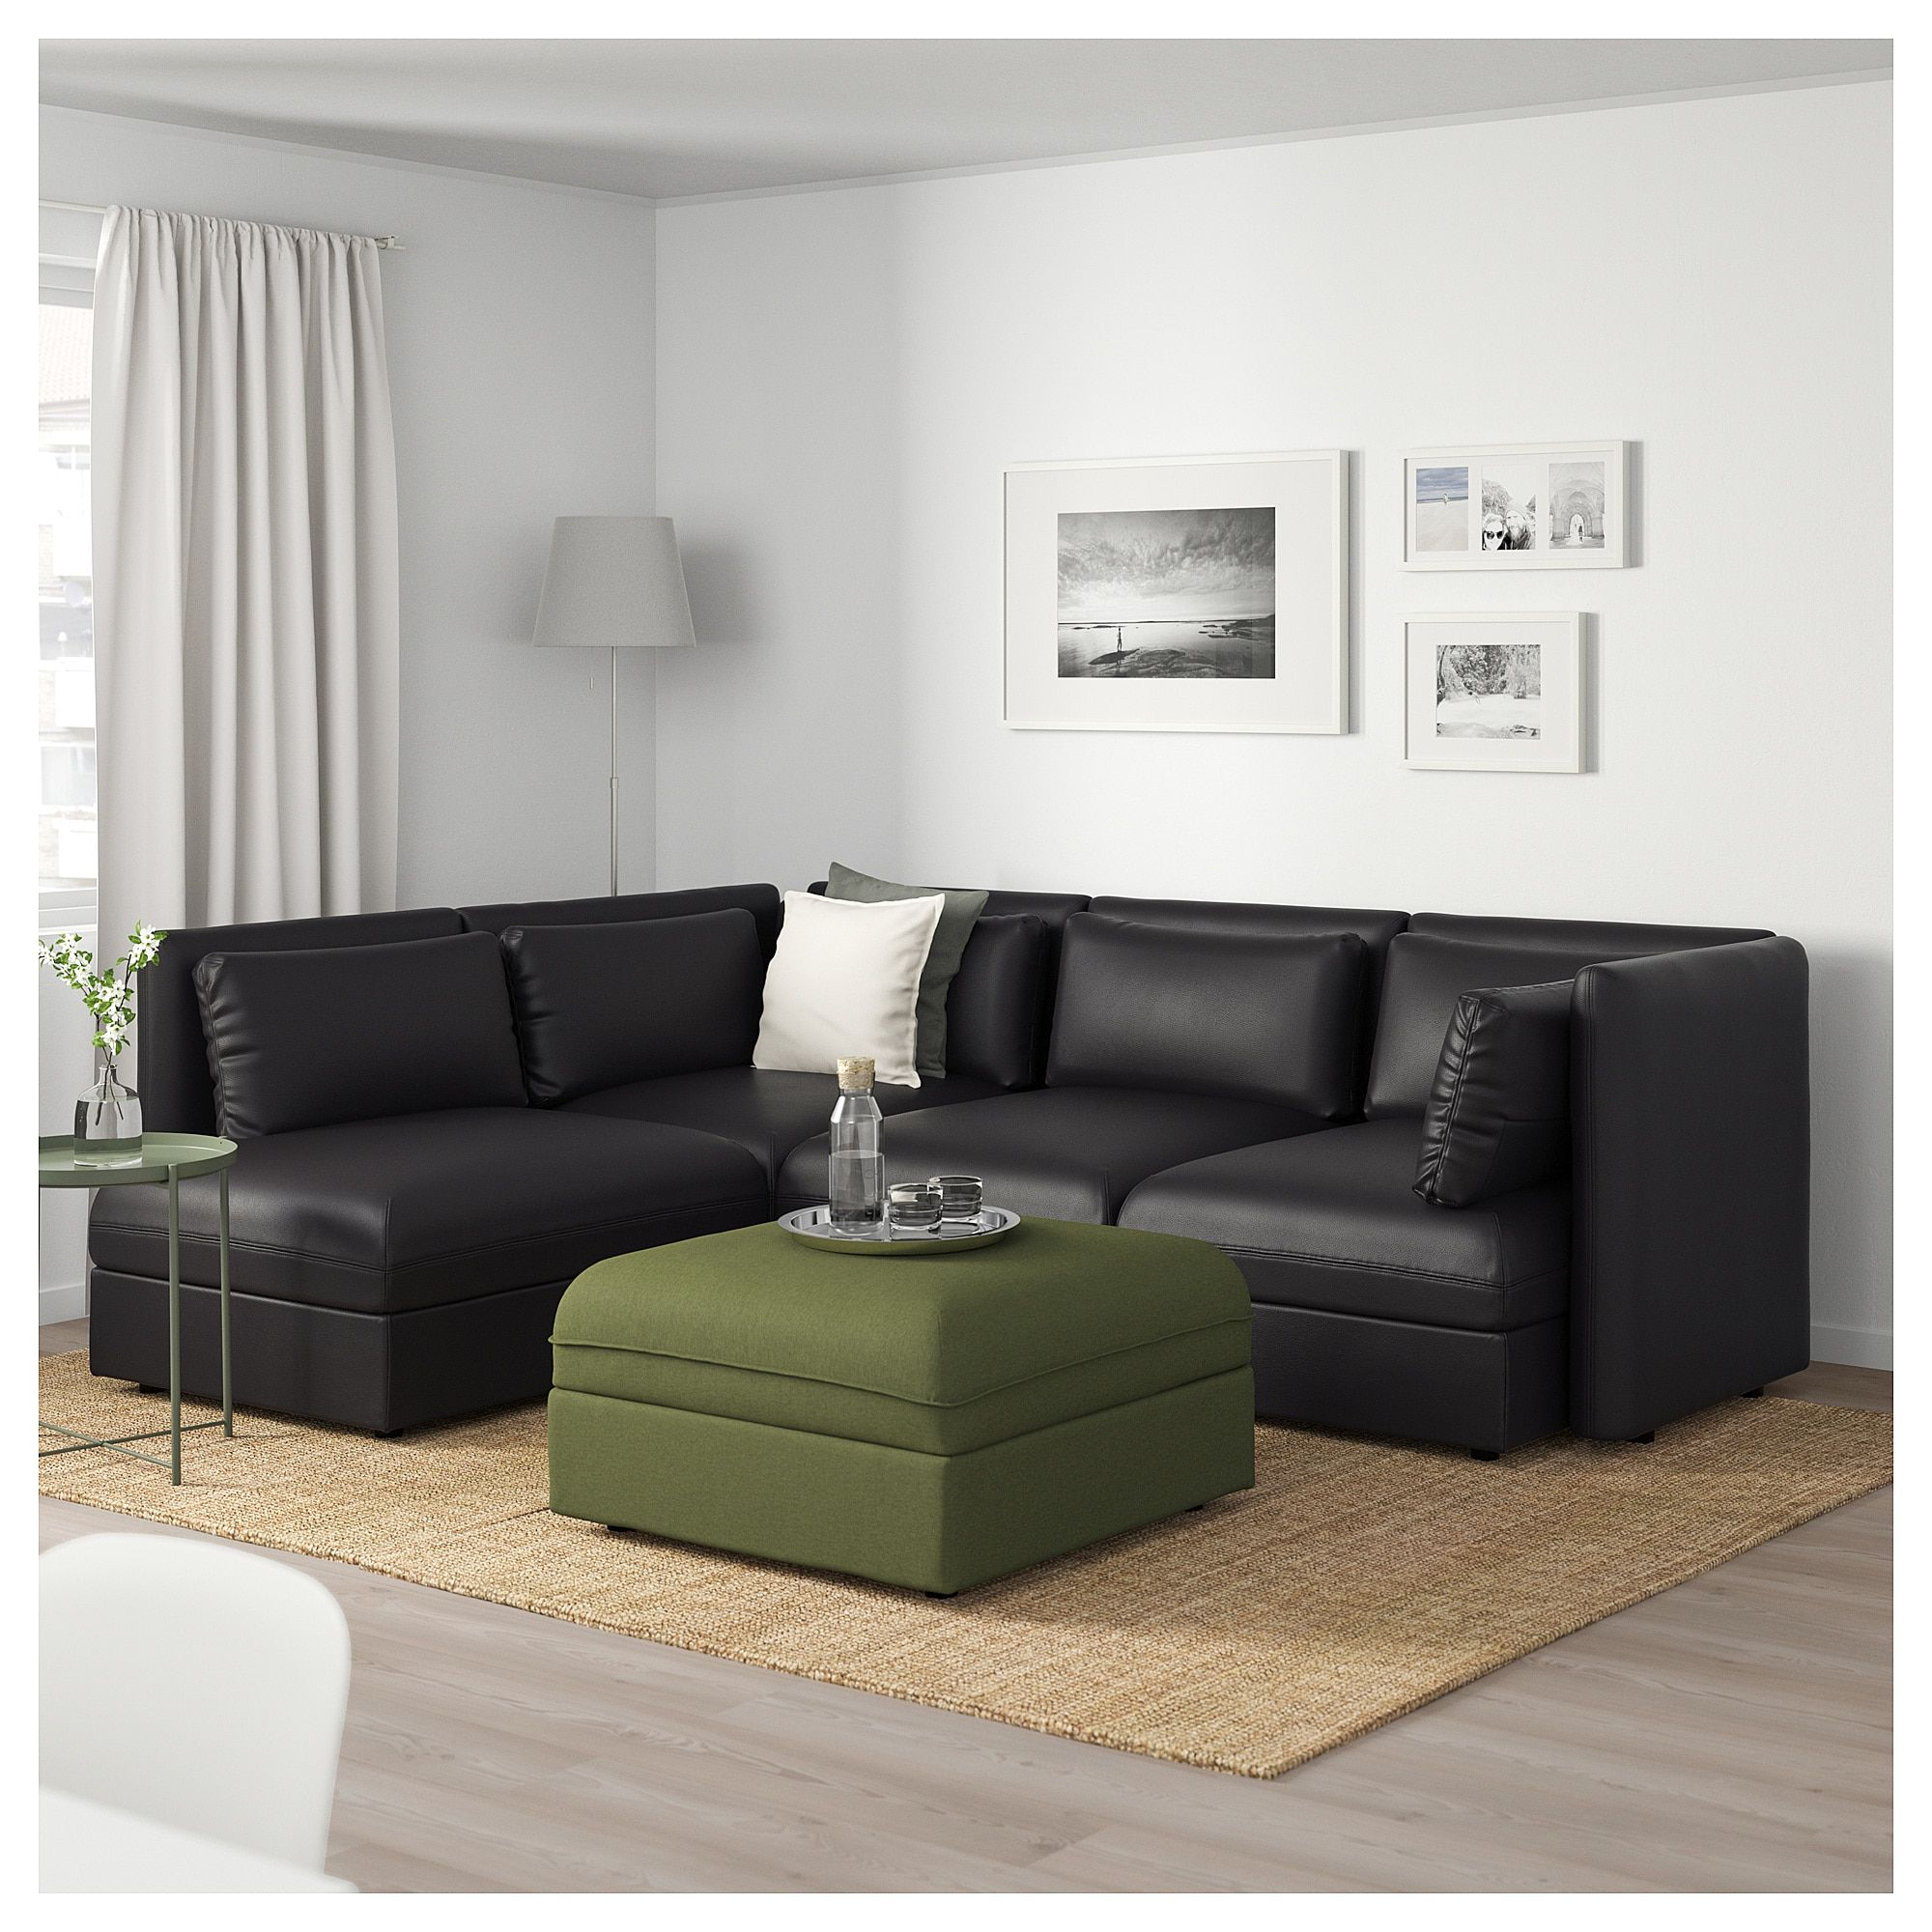 Marvelous Vallentuna Modular Corner Sofa 4 Seat With Storage Murum Lamtechconsult Wood Chair Design Ideas Lamtechconsultcom